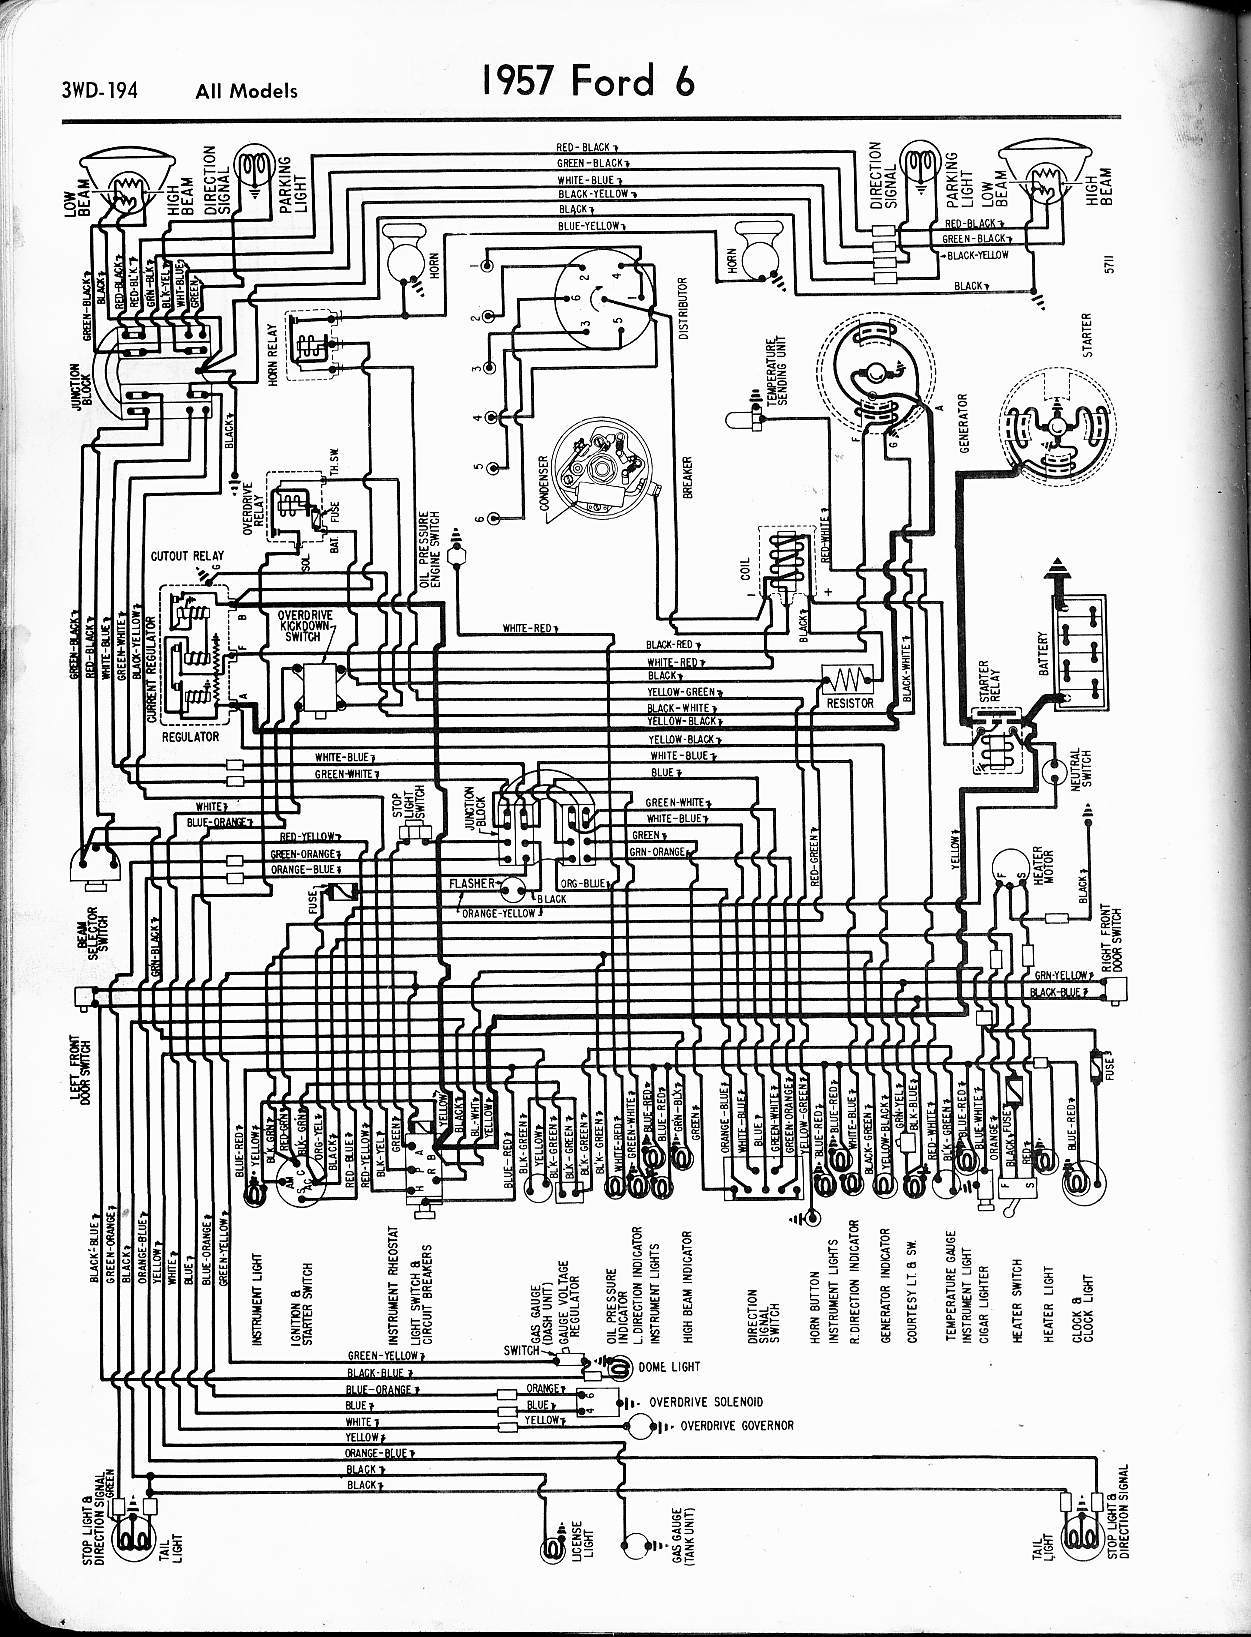 51 Ford Wiring Diagram Turn Singles Wiring Diagram Series Series Pasticceriagele It